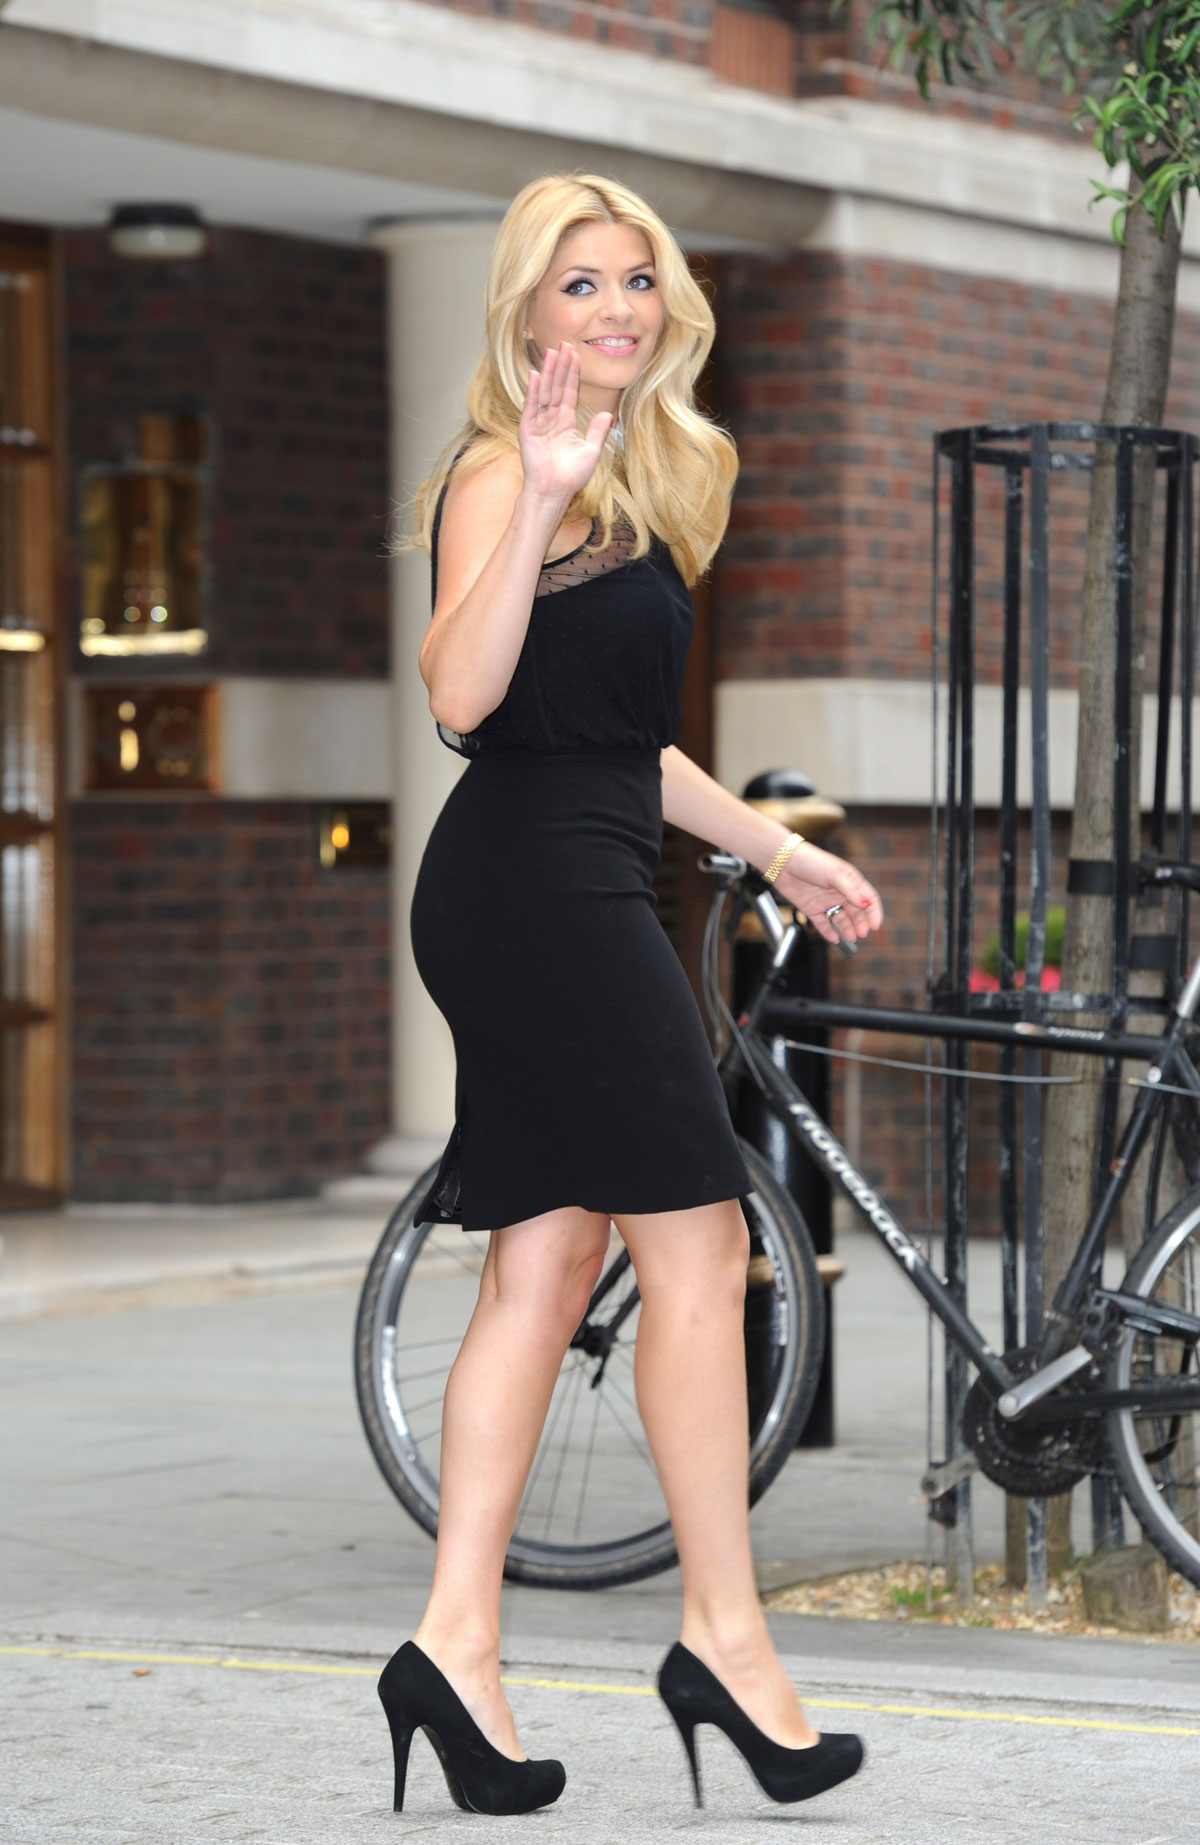 e4543ae47c2 HOLLY WILLOUGHBY at Photoshoot for Very.co.uk - HawtCelebs